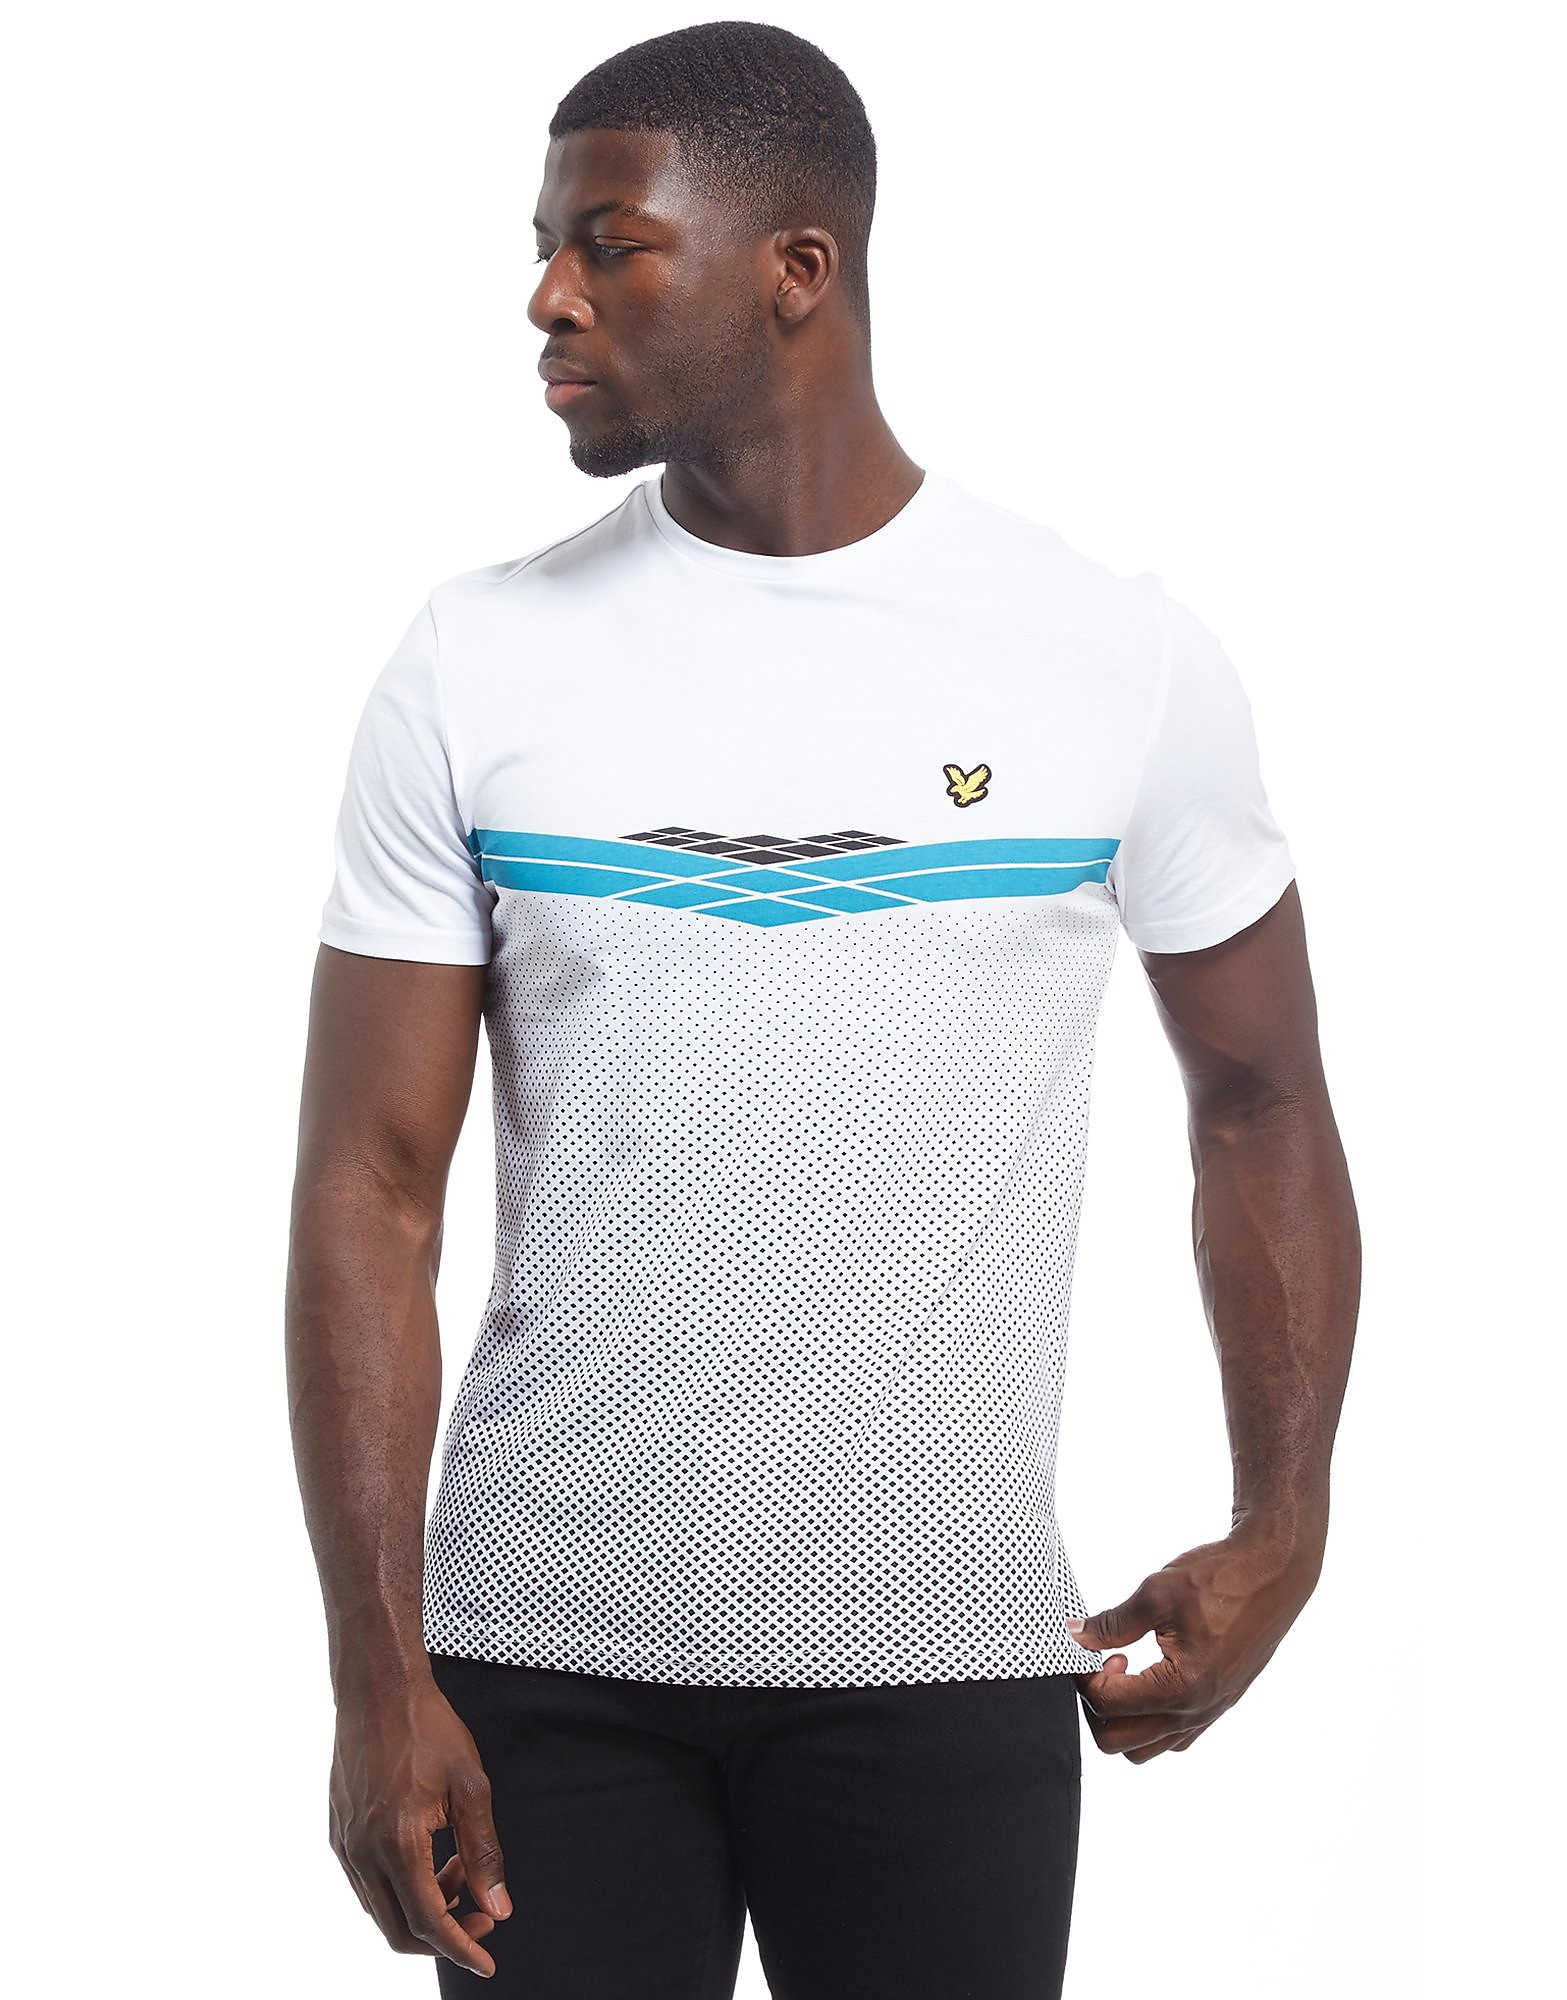 Lyle & Scott Mclean Graphic T-Shirt